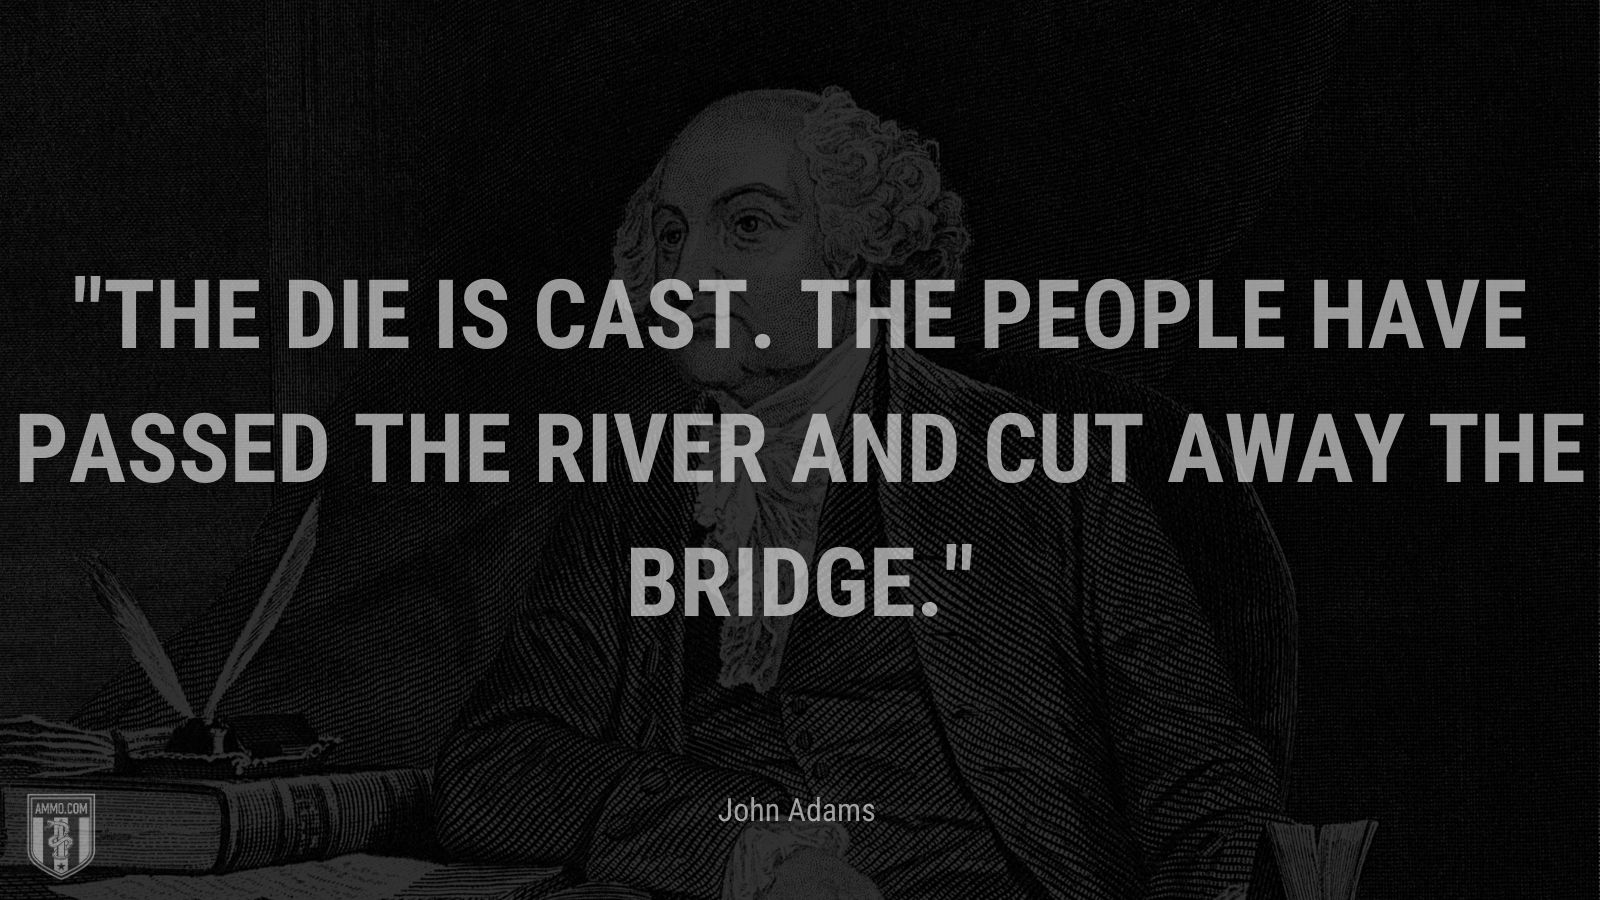 """""""The die is cast. The people have passed the river and cut away the bridge."""" - John Adams"""